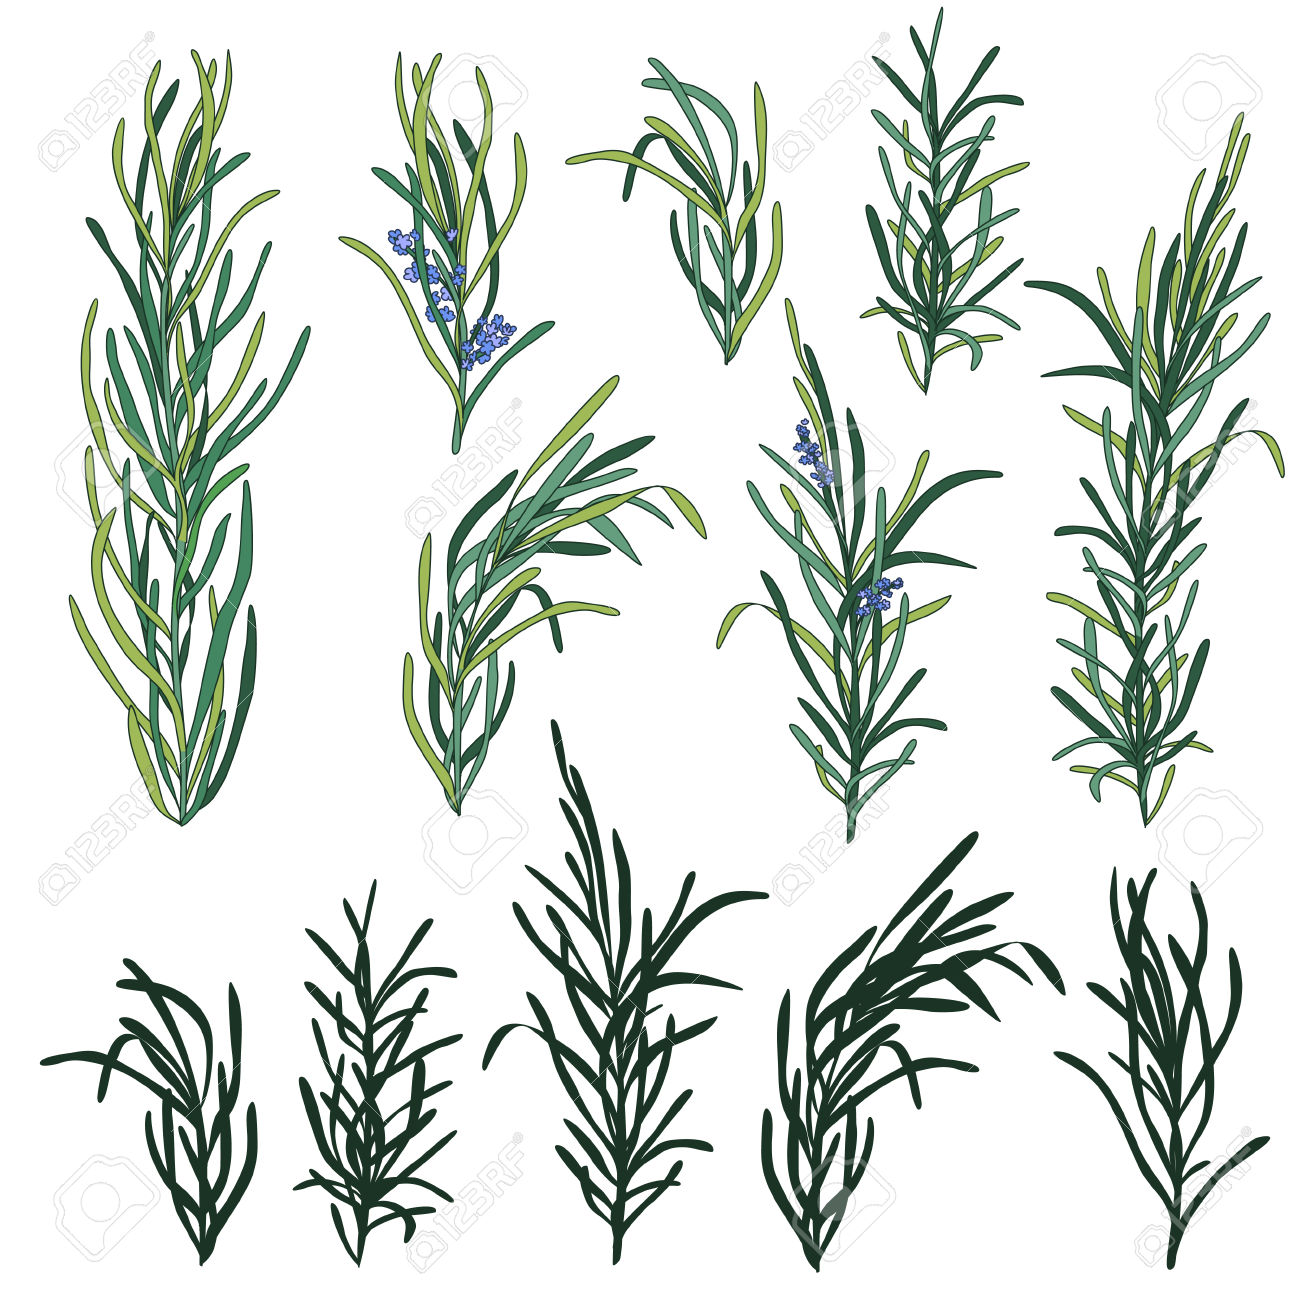 2,473 Rosemary Herb Stock Vector Illustration And Royalty Free.